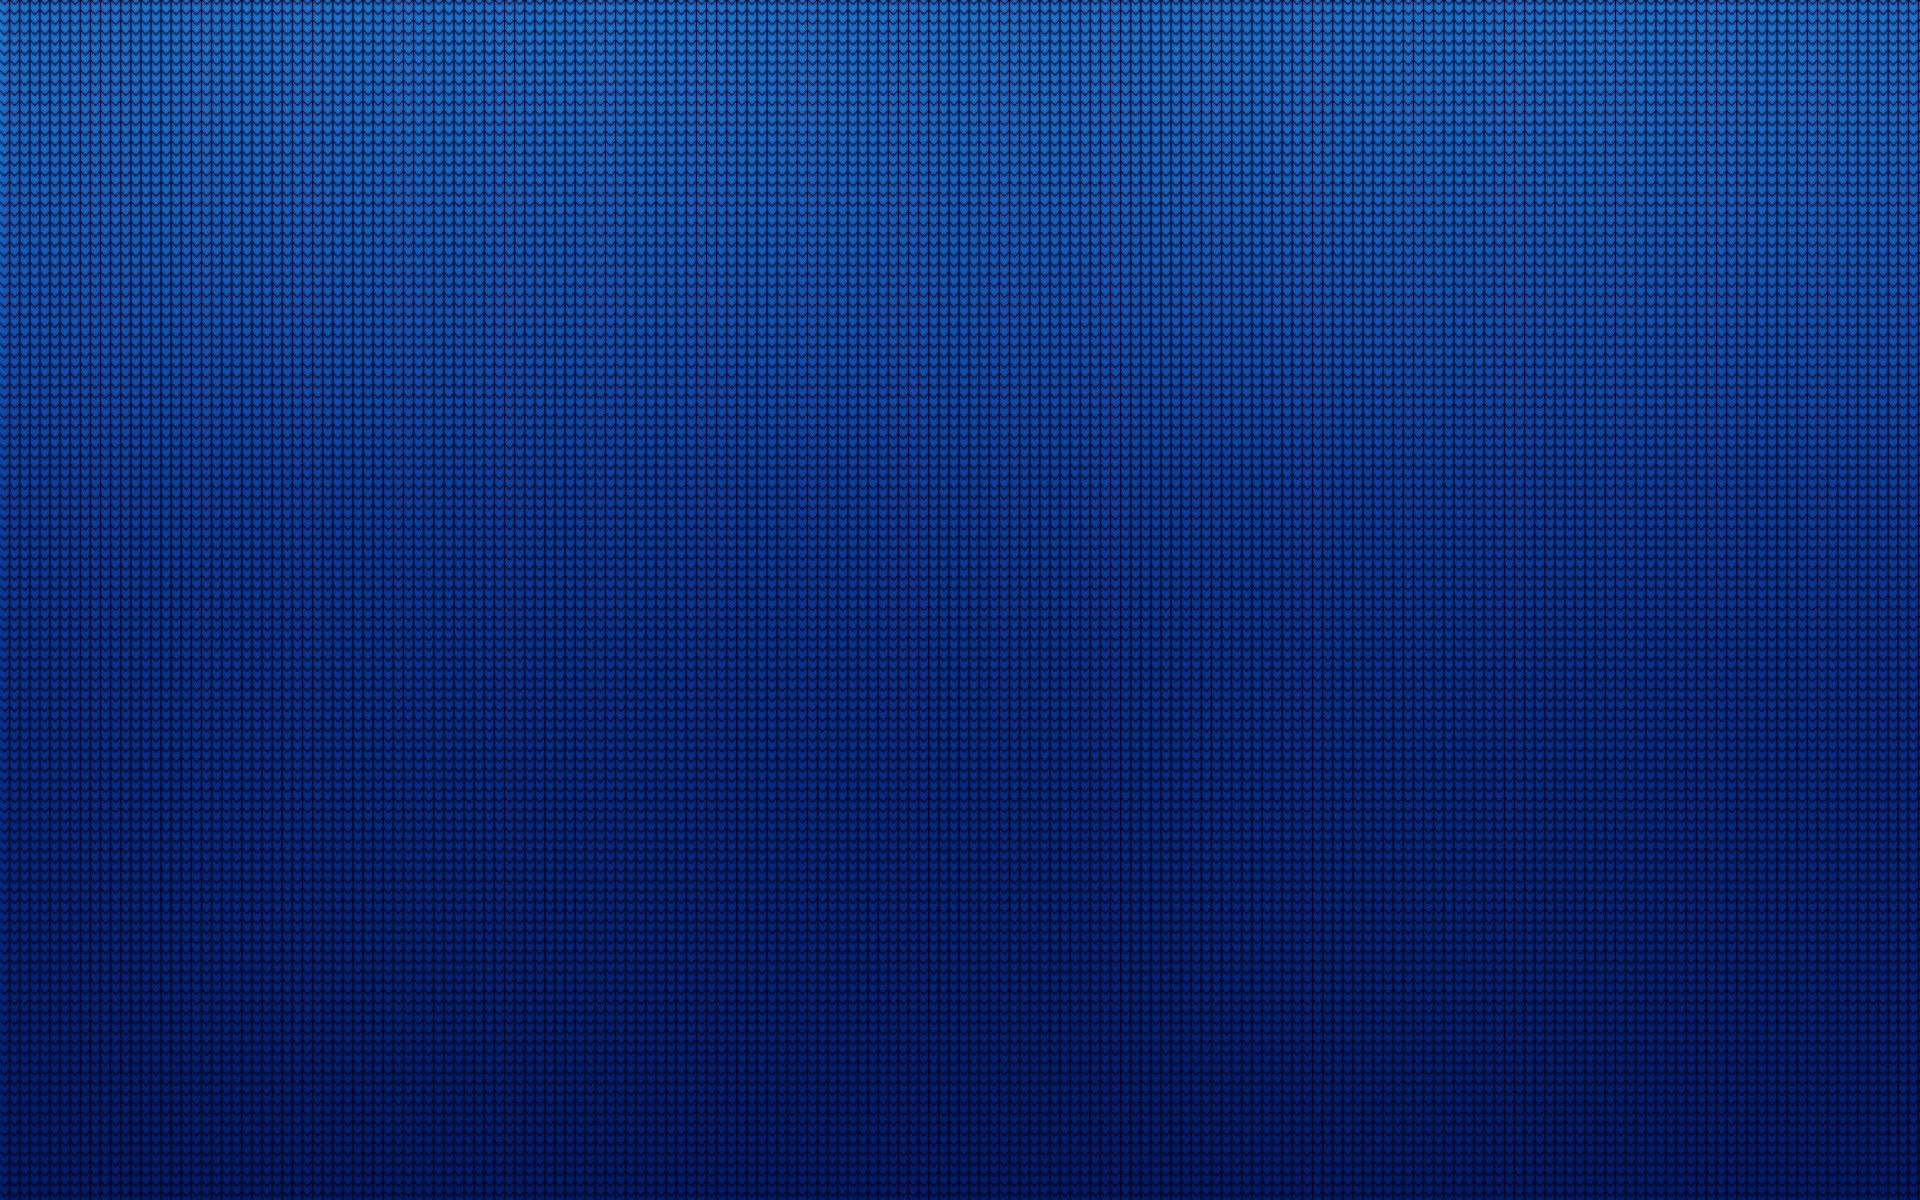 Blue Background Hd 20 Blue Textured Backgrounds